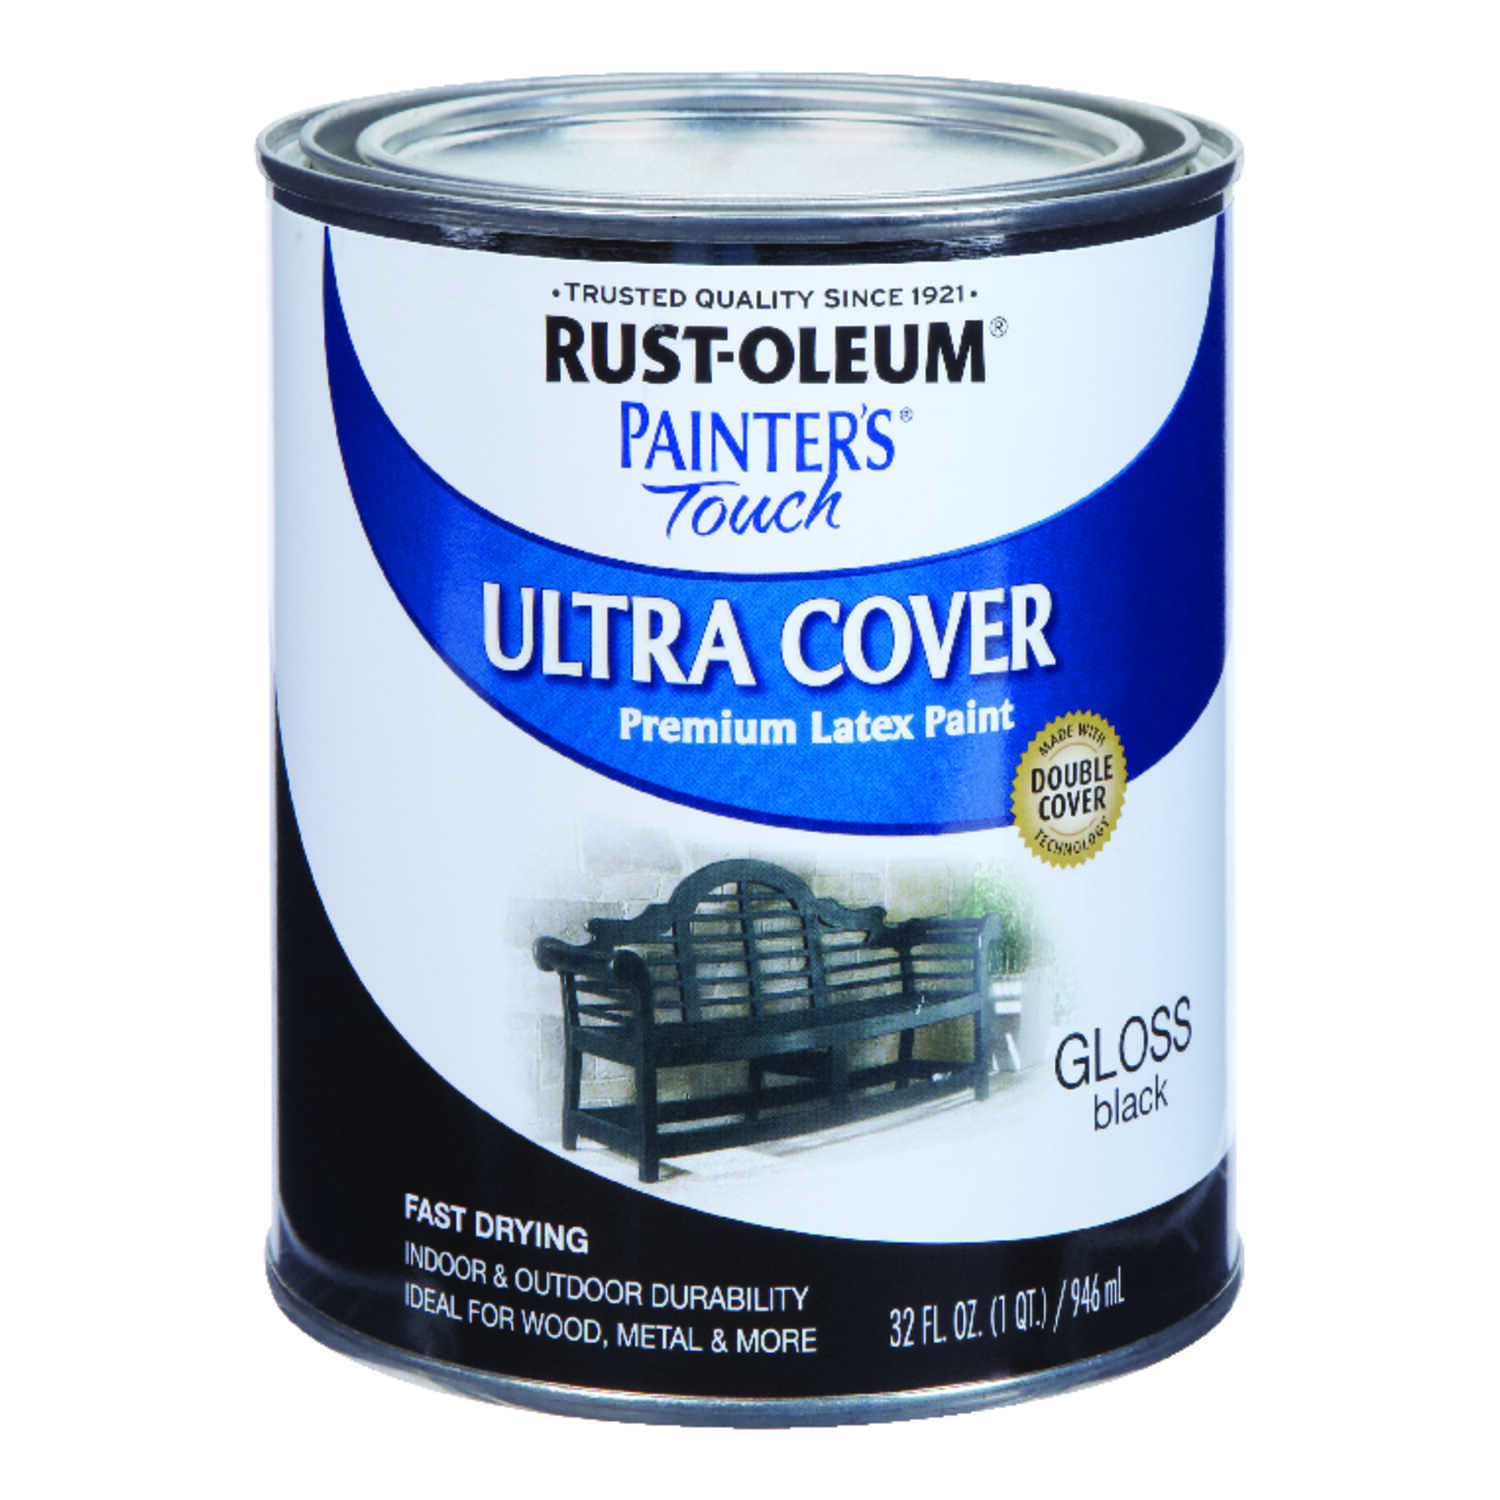 Rust-Oleum  Painters Touch Ultra Cover  Gloss  Black  Paint  1 qt. Indoor and Outdoor